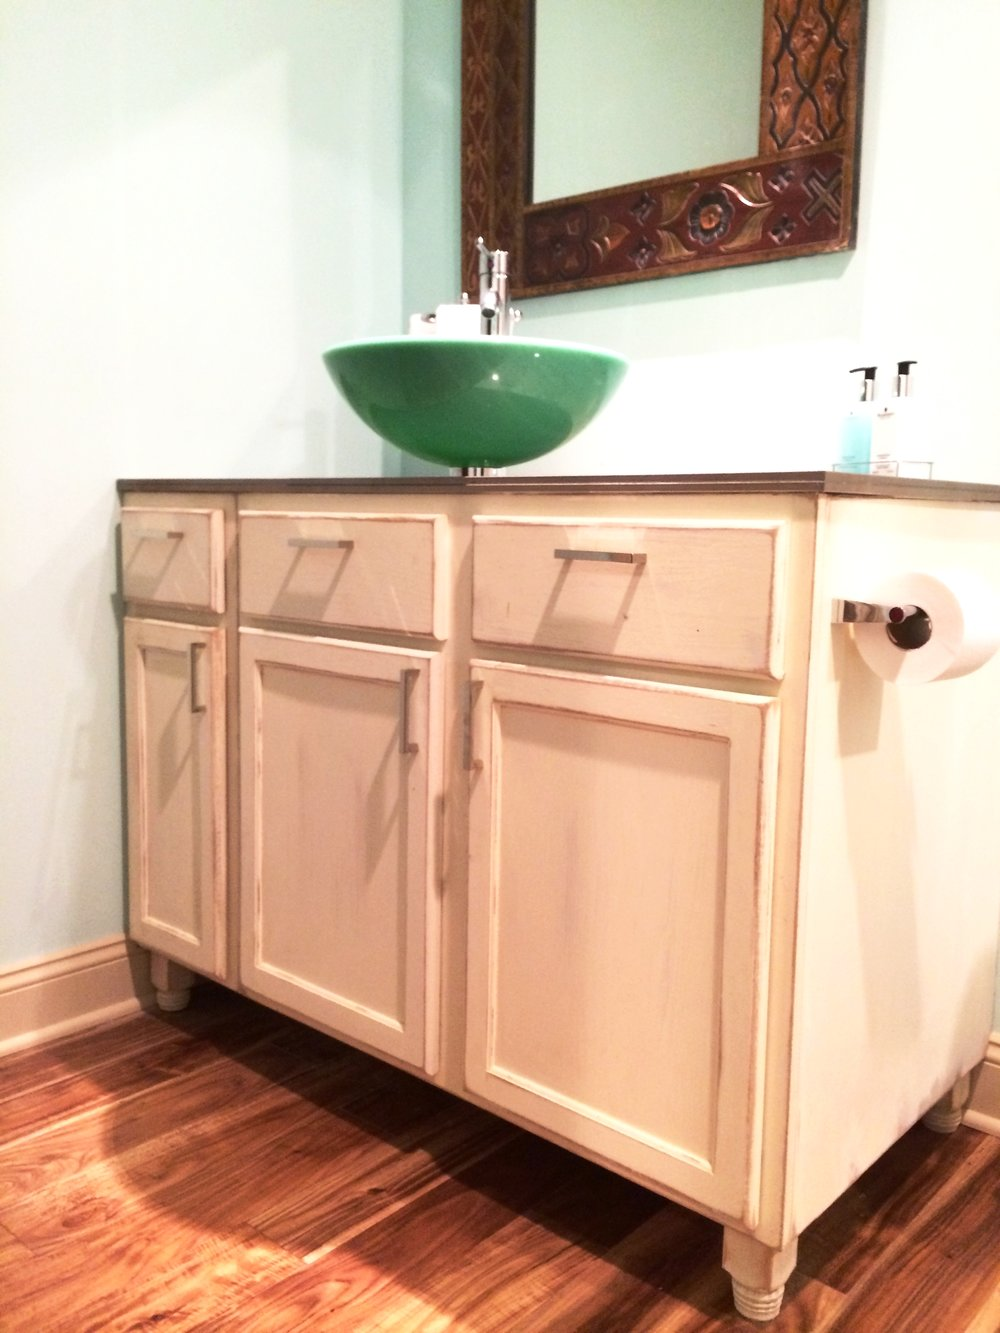 Cody created a custom vanity topped with an amazing acid stained glass top and sea green vessel sink.